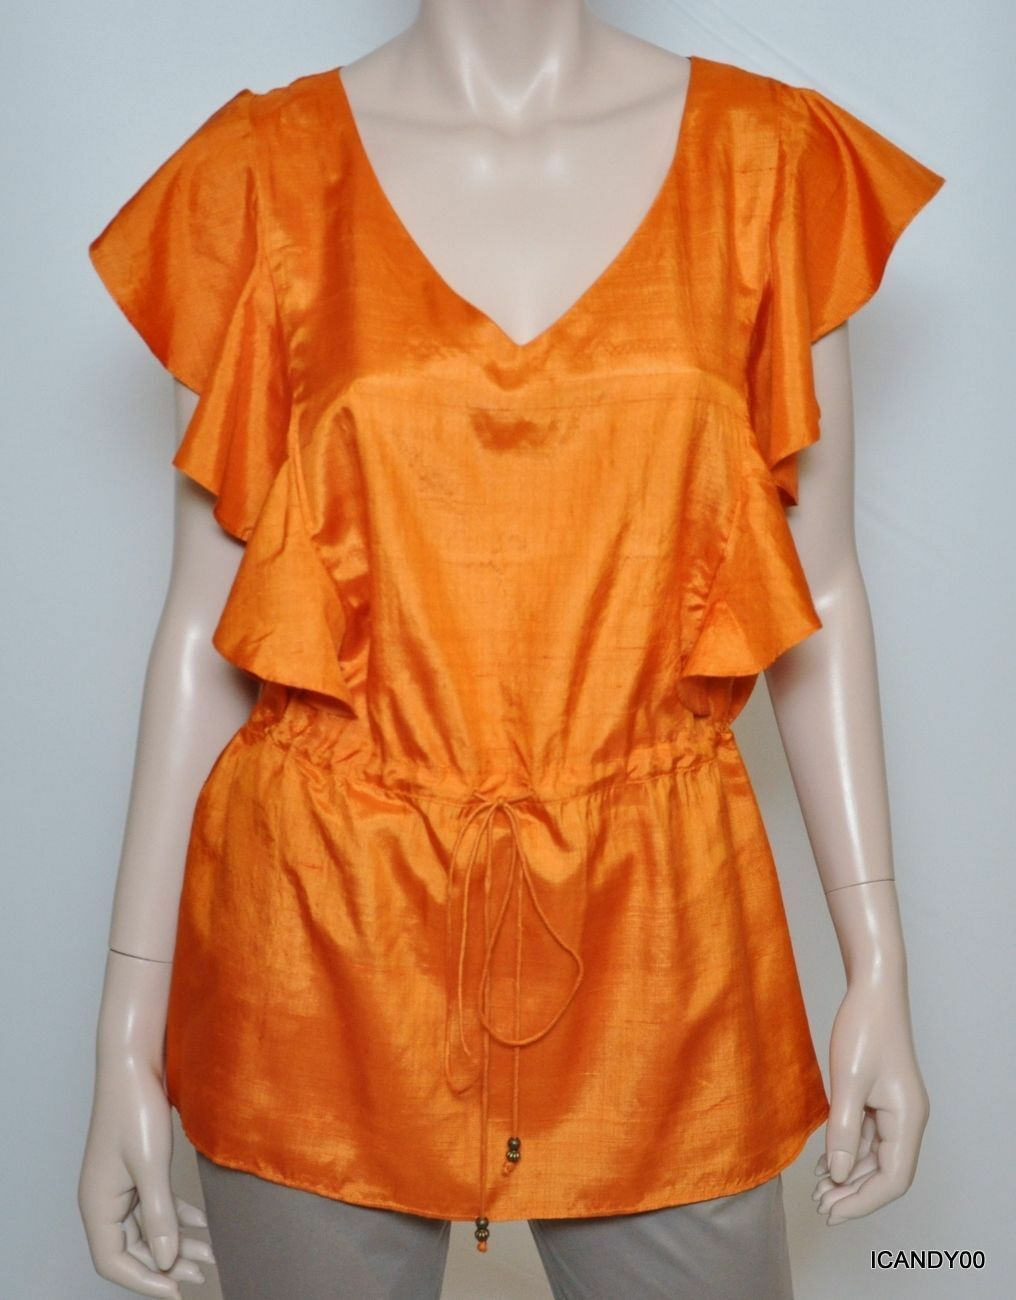 Nwt Lauren Ralph Lauren Drawstring Silk Cascade Sleeve Blouse Top Shirt Orange L